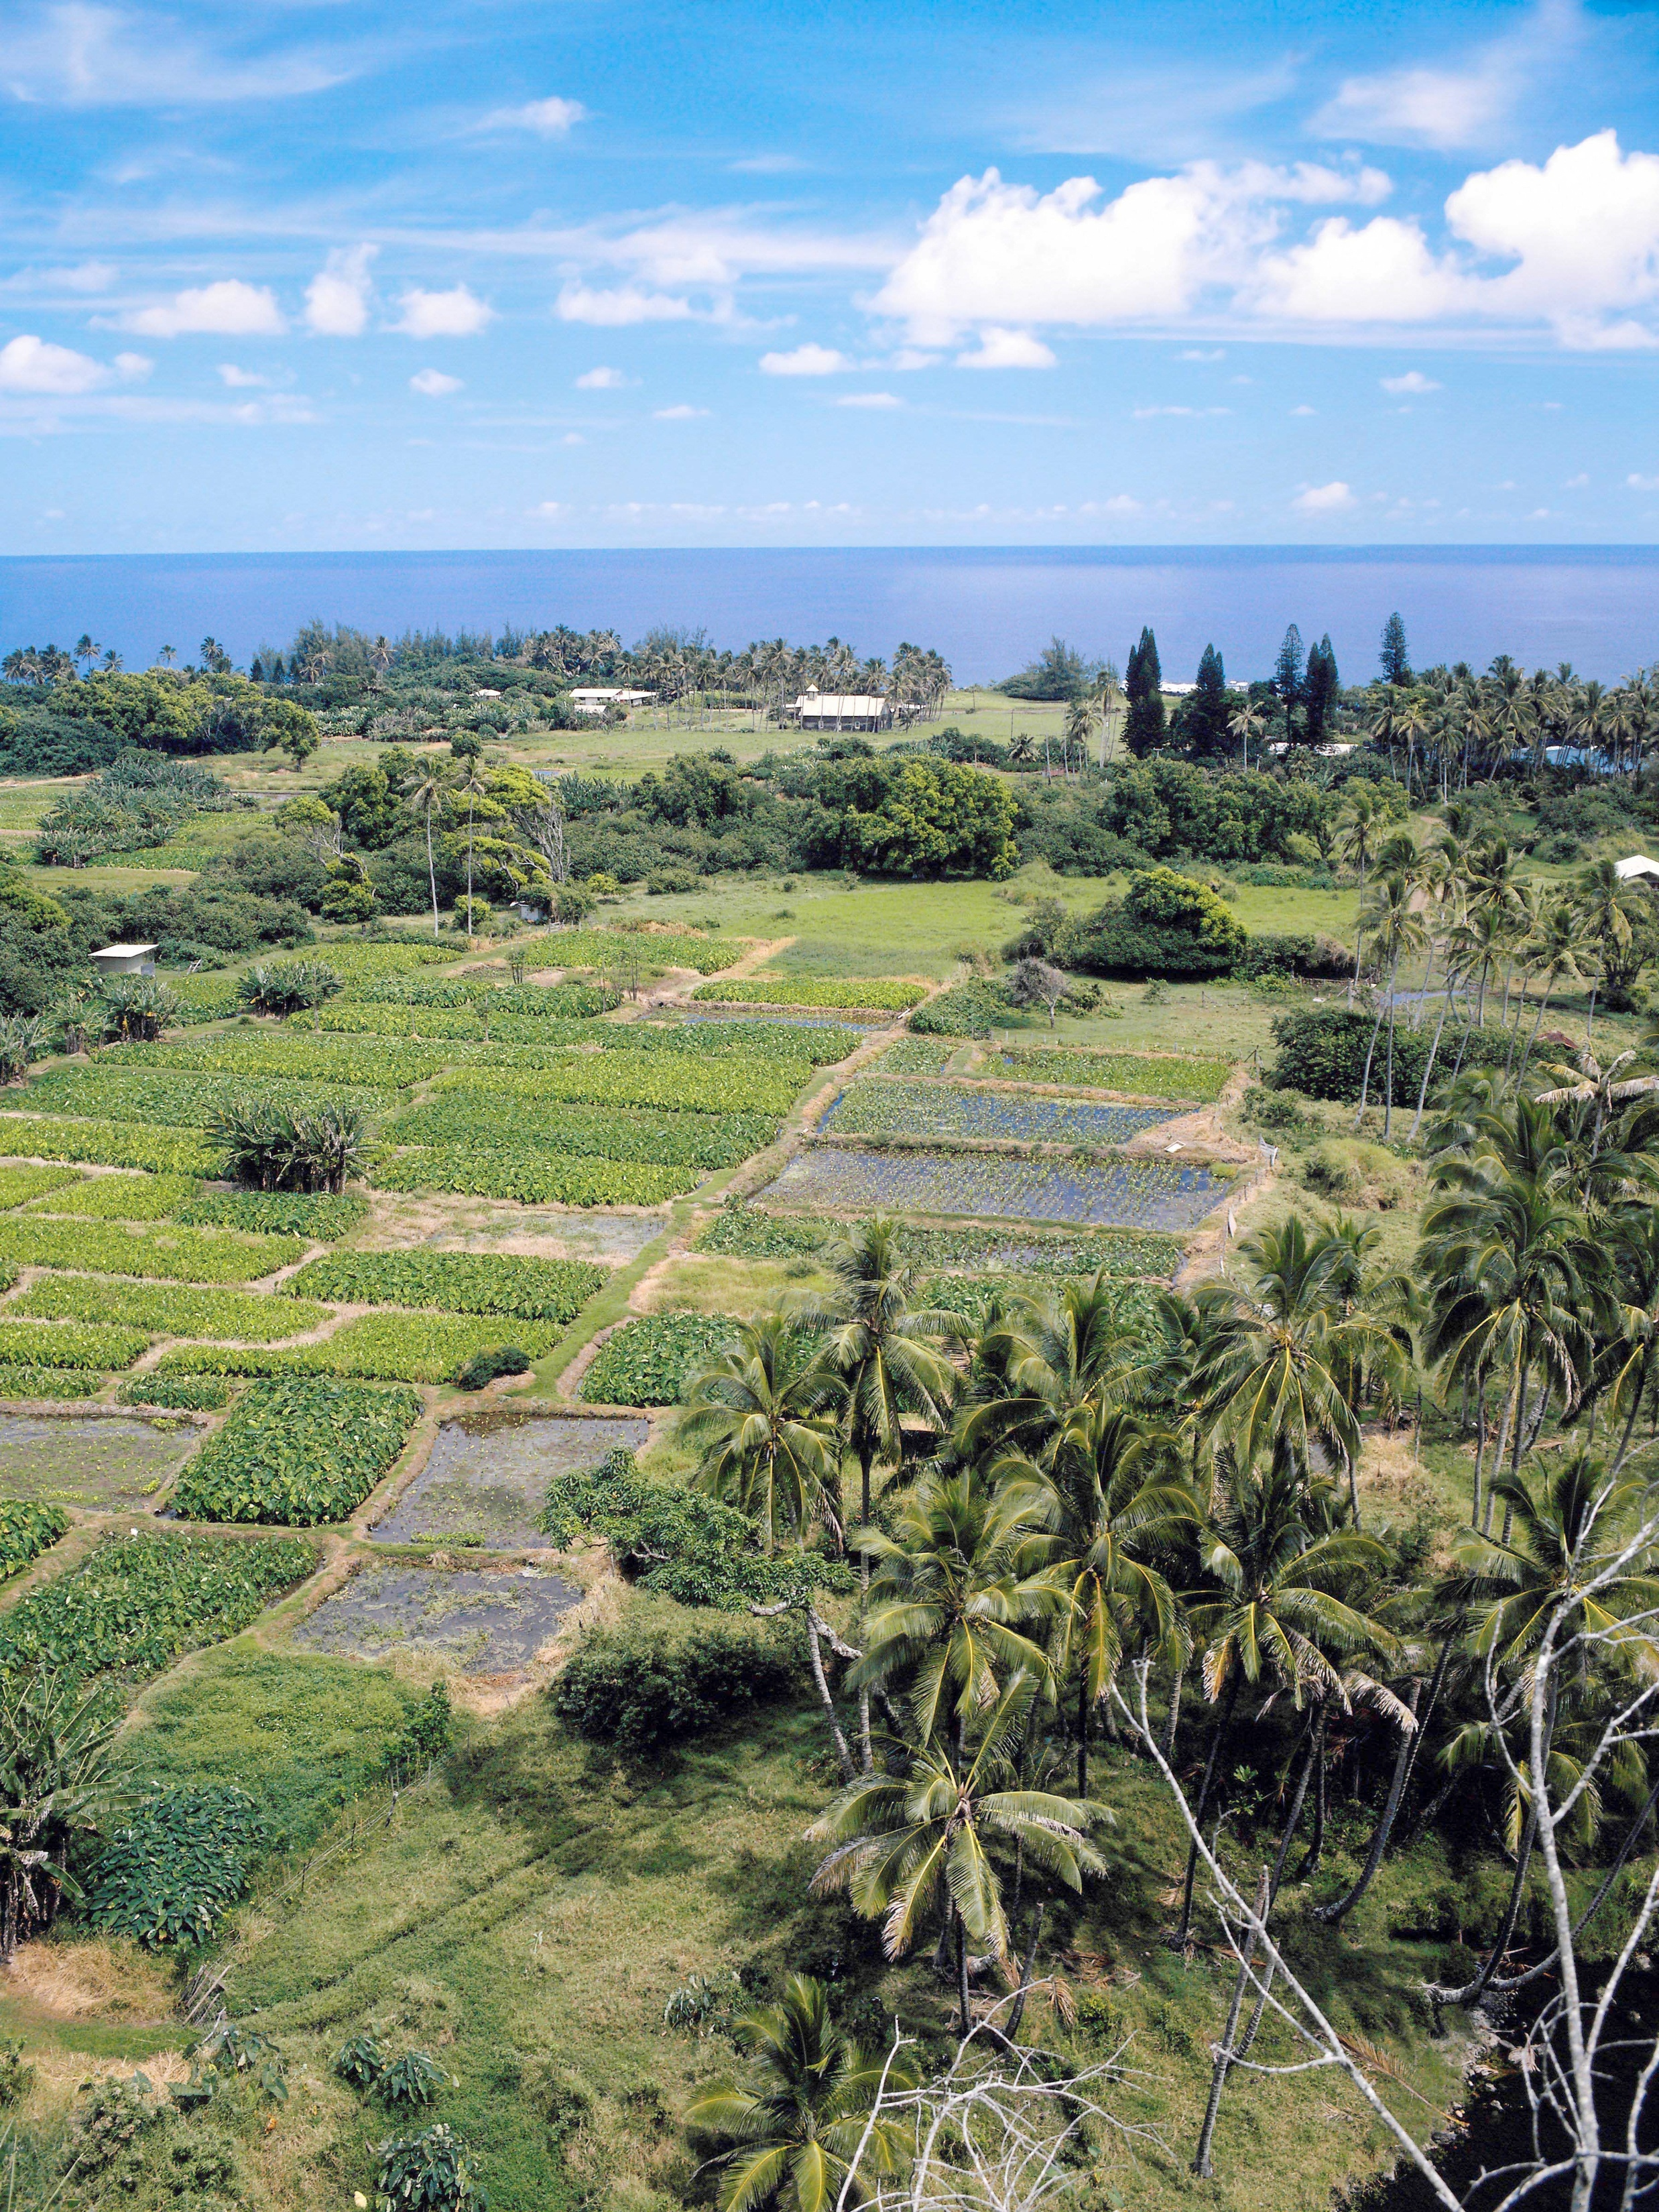 annexation of hawaii essay The teller amendment, that foreswore any intention of annexing cuba  the  expansion of 1898, which included the annexation of the hawaiian islands,.